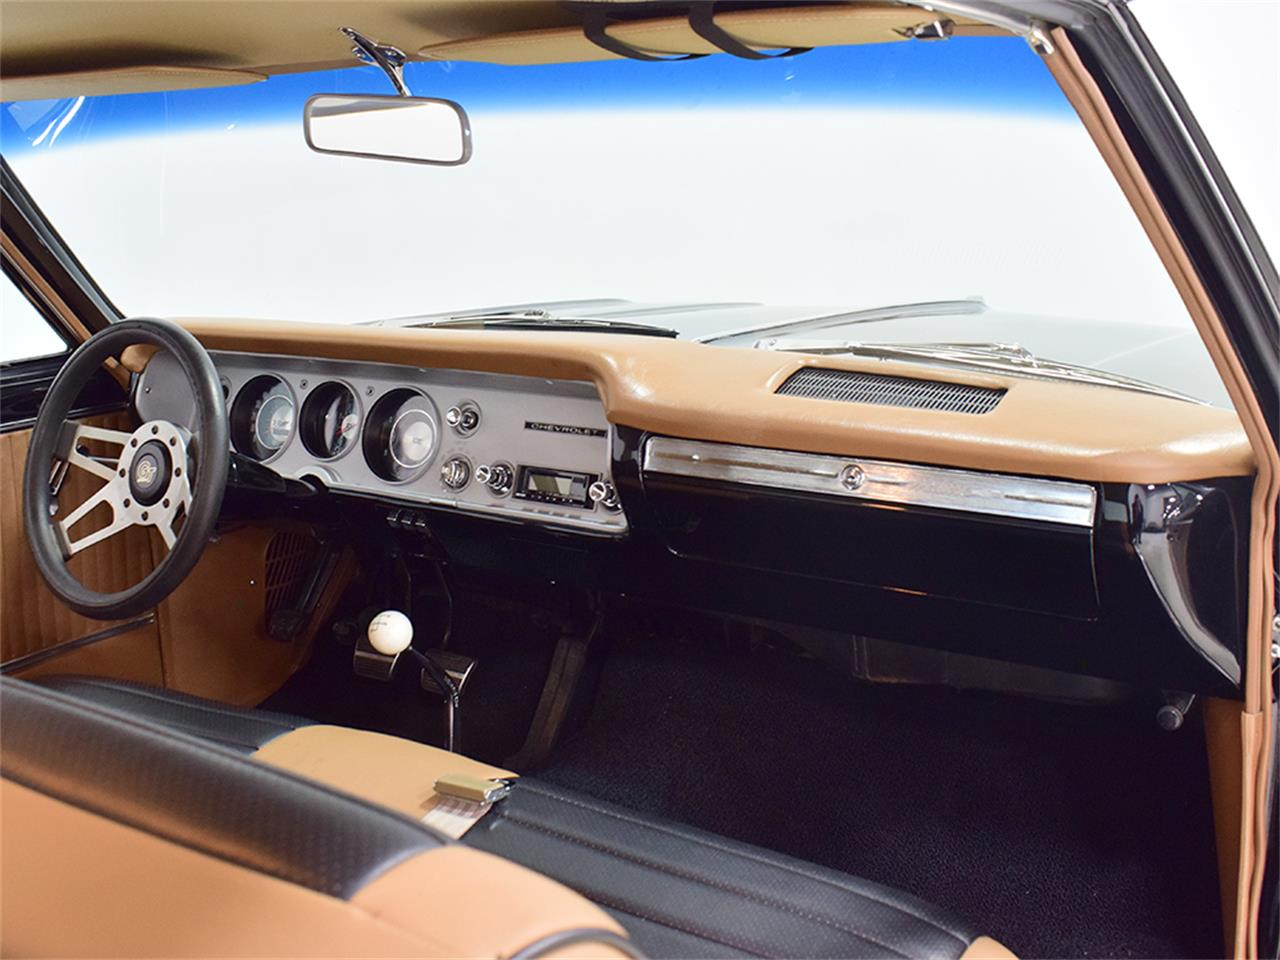 Large Picture of 1964 Chevrolet Malibu located in Ohio Offered by Harwood Motors, LTD. - PK4B